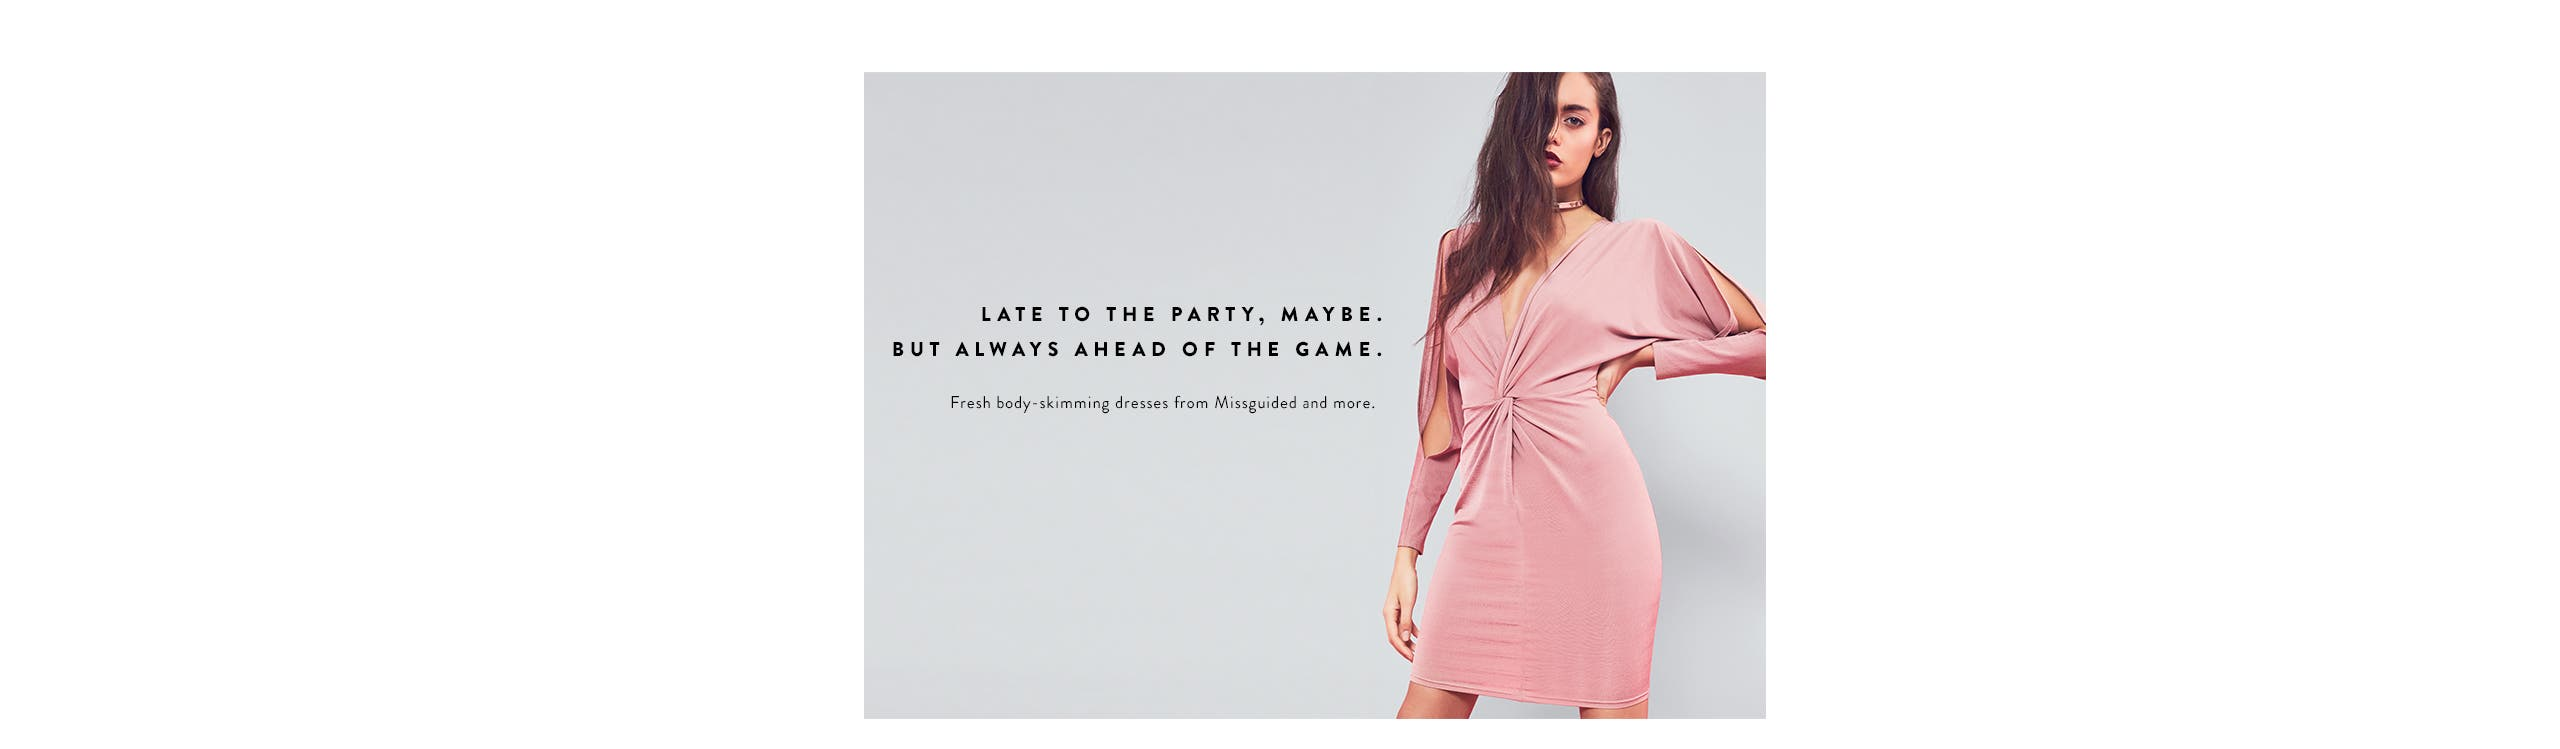 Late to the party, maybe, but always ahead of the game in trend night-out dresses.